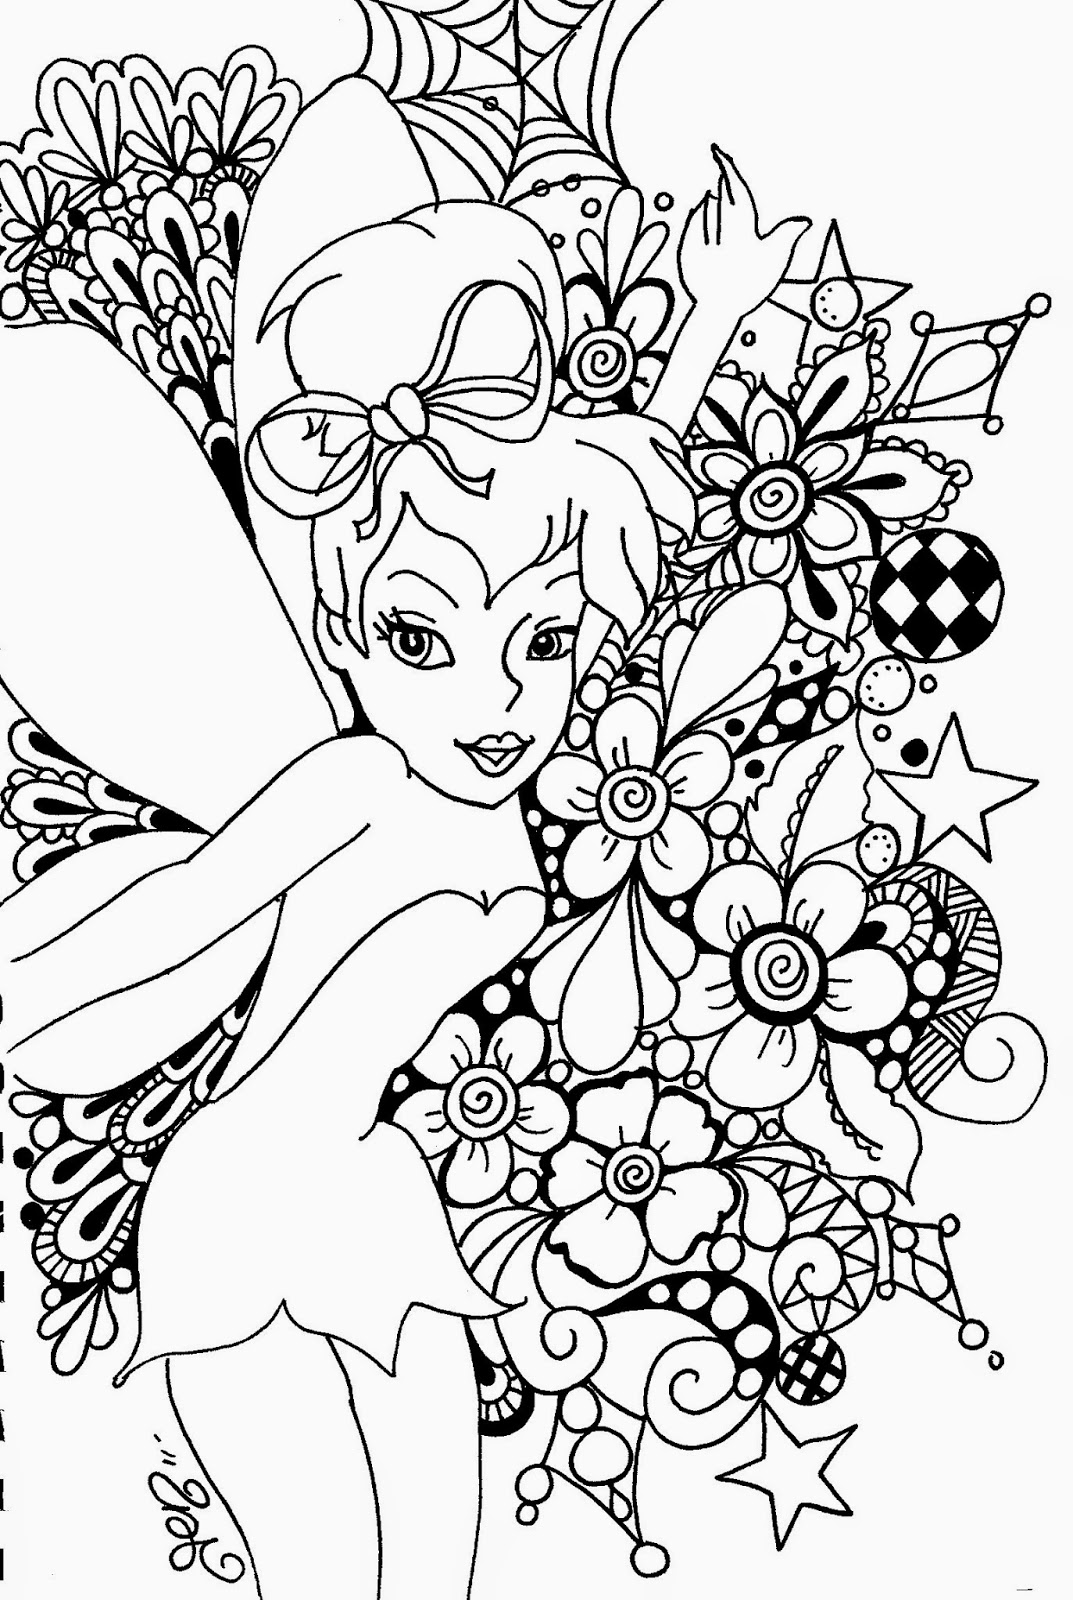 tinkerbell colouring in tinkerbell easy drawing at getdrawings free download tinkerbell in colouring